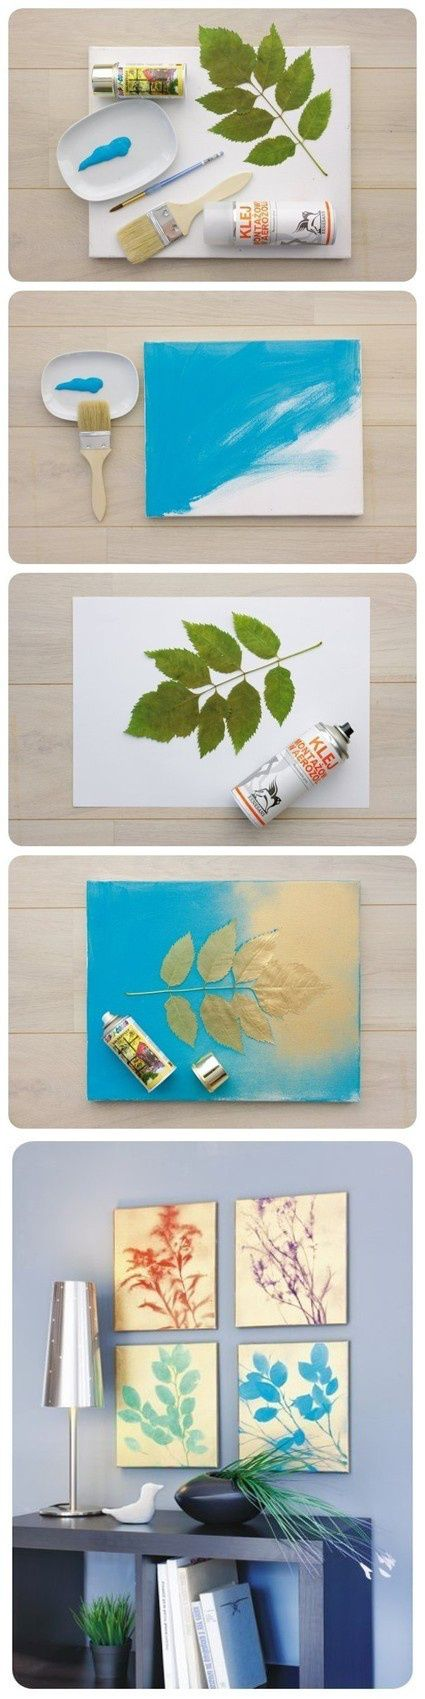 *paint entire canvas (the color  you want the leaves to be)  * place leaves over the canvas and spray paint the desired background color (lighter than 1st color, ideally - they used gold or white, etc)   * Use a line brush to hand paint stems in desired color.   (my best guess)